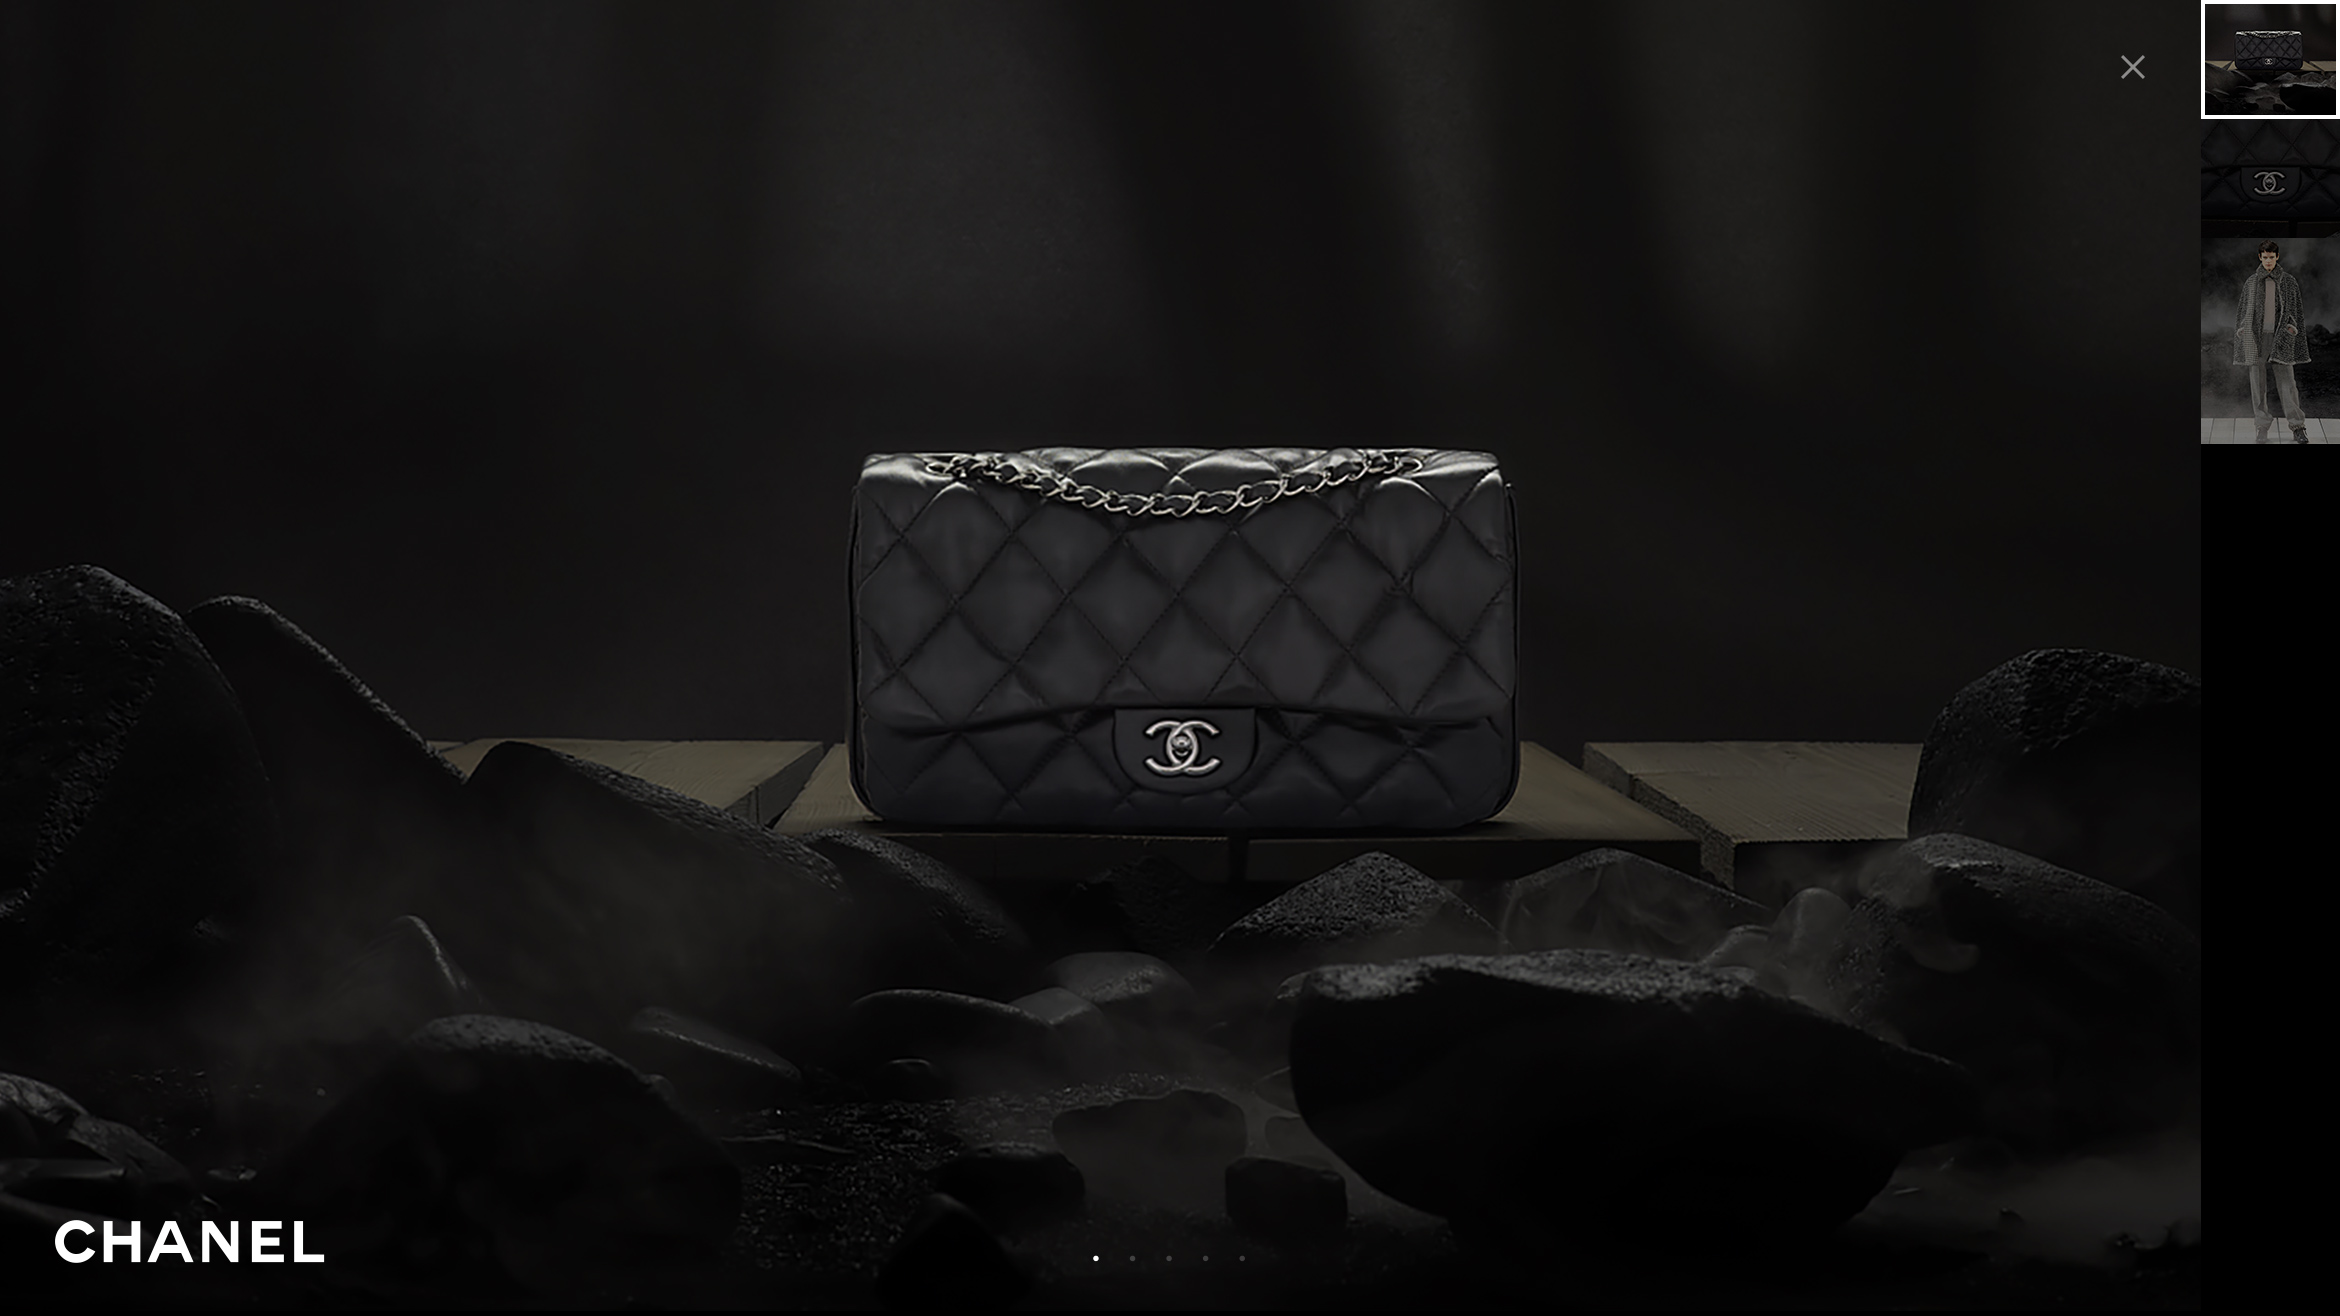 Chanel_Fashion_Product_Handbag_2